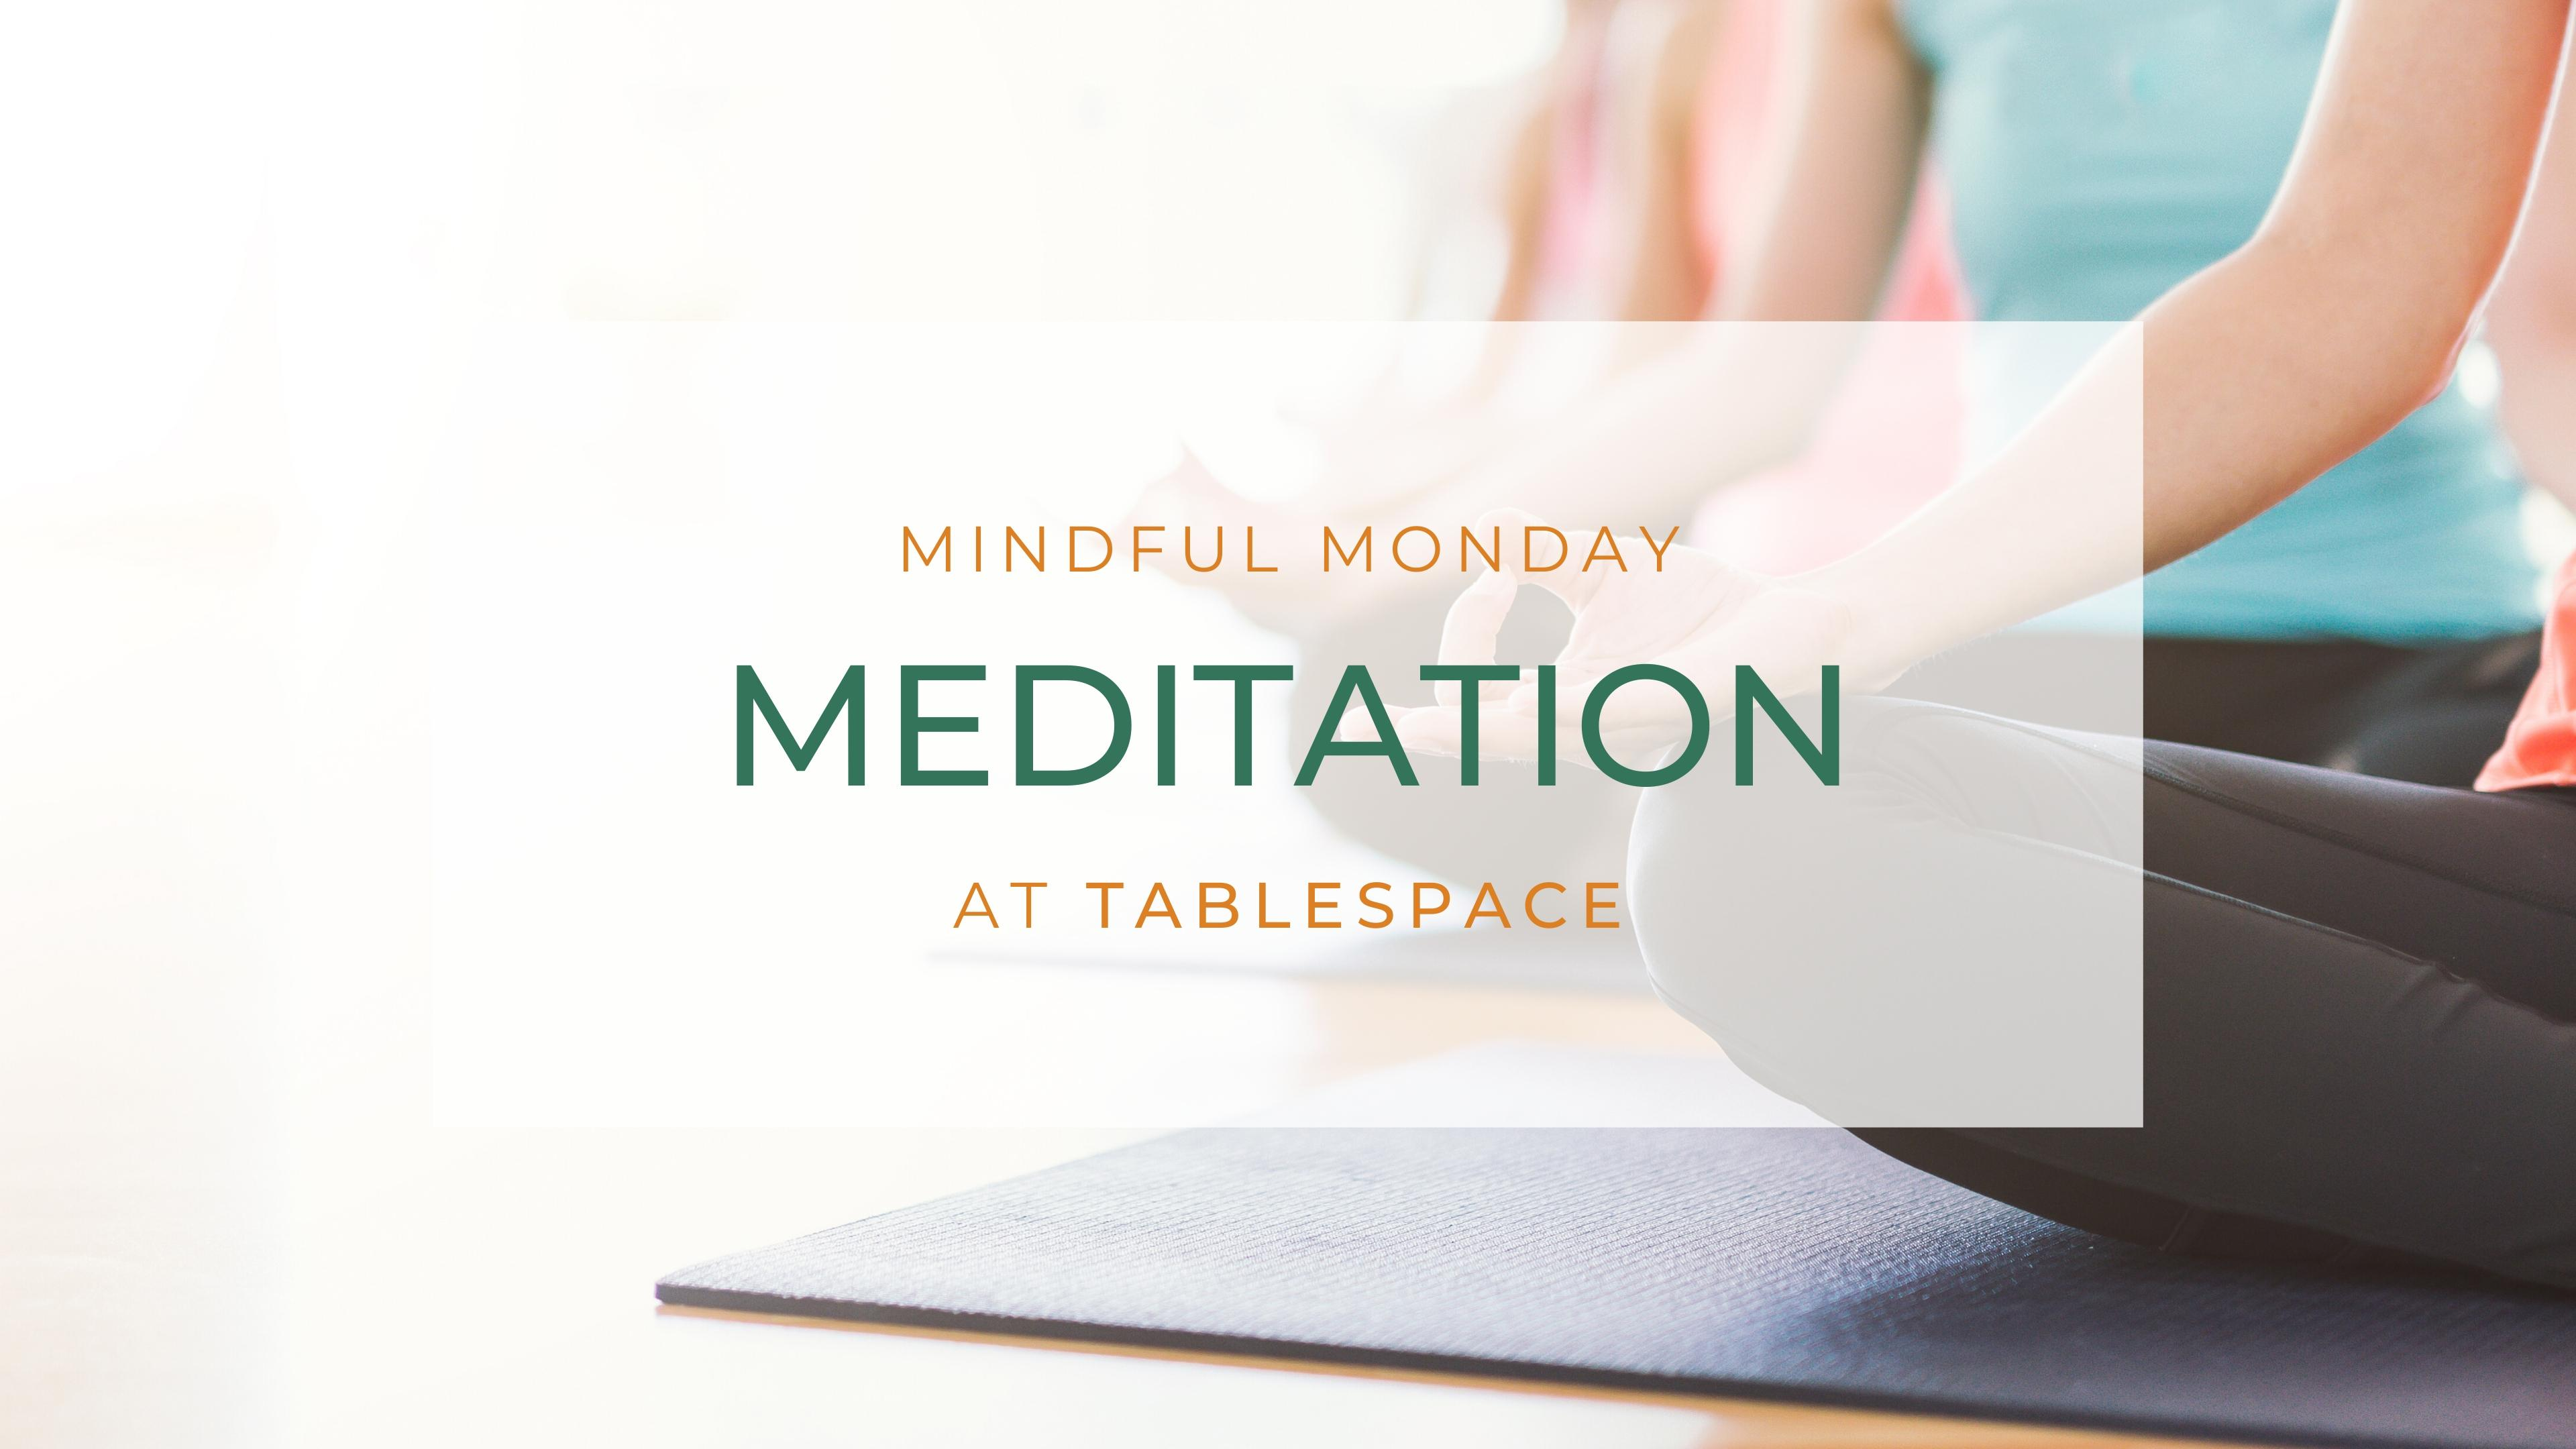 Mindful Monday Meditation